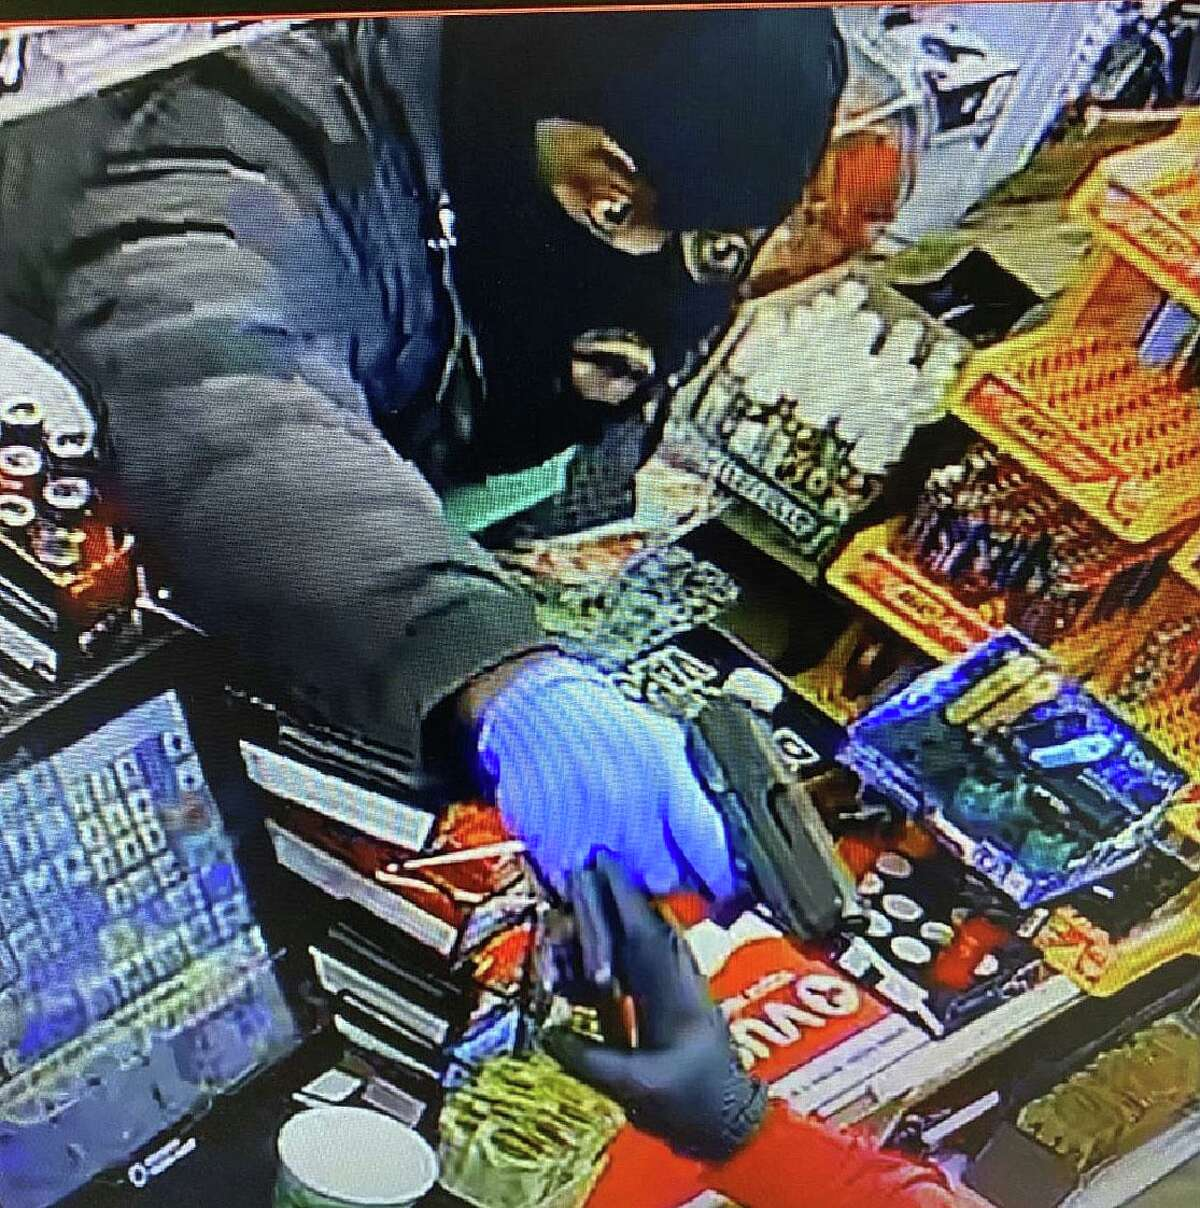 Police said multiple suspects robbed a gas station with at least one handgun on Tuesday, Dec. 22, 2020.